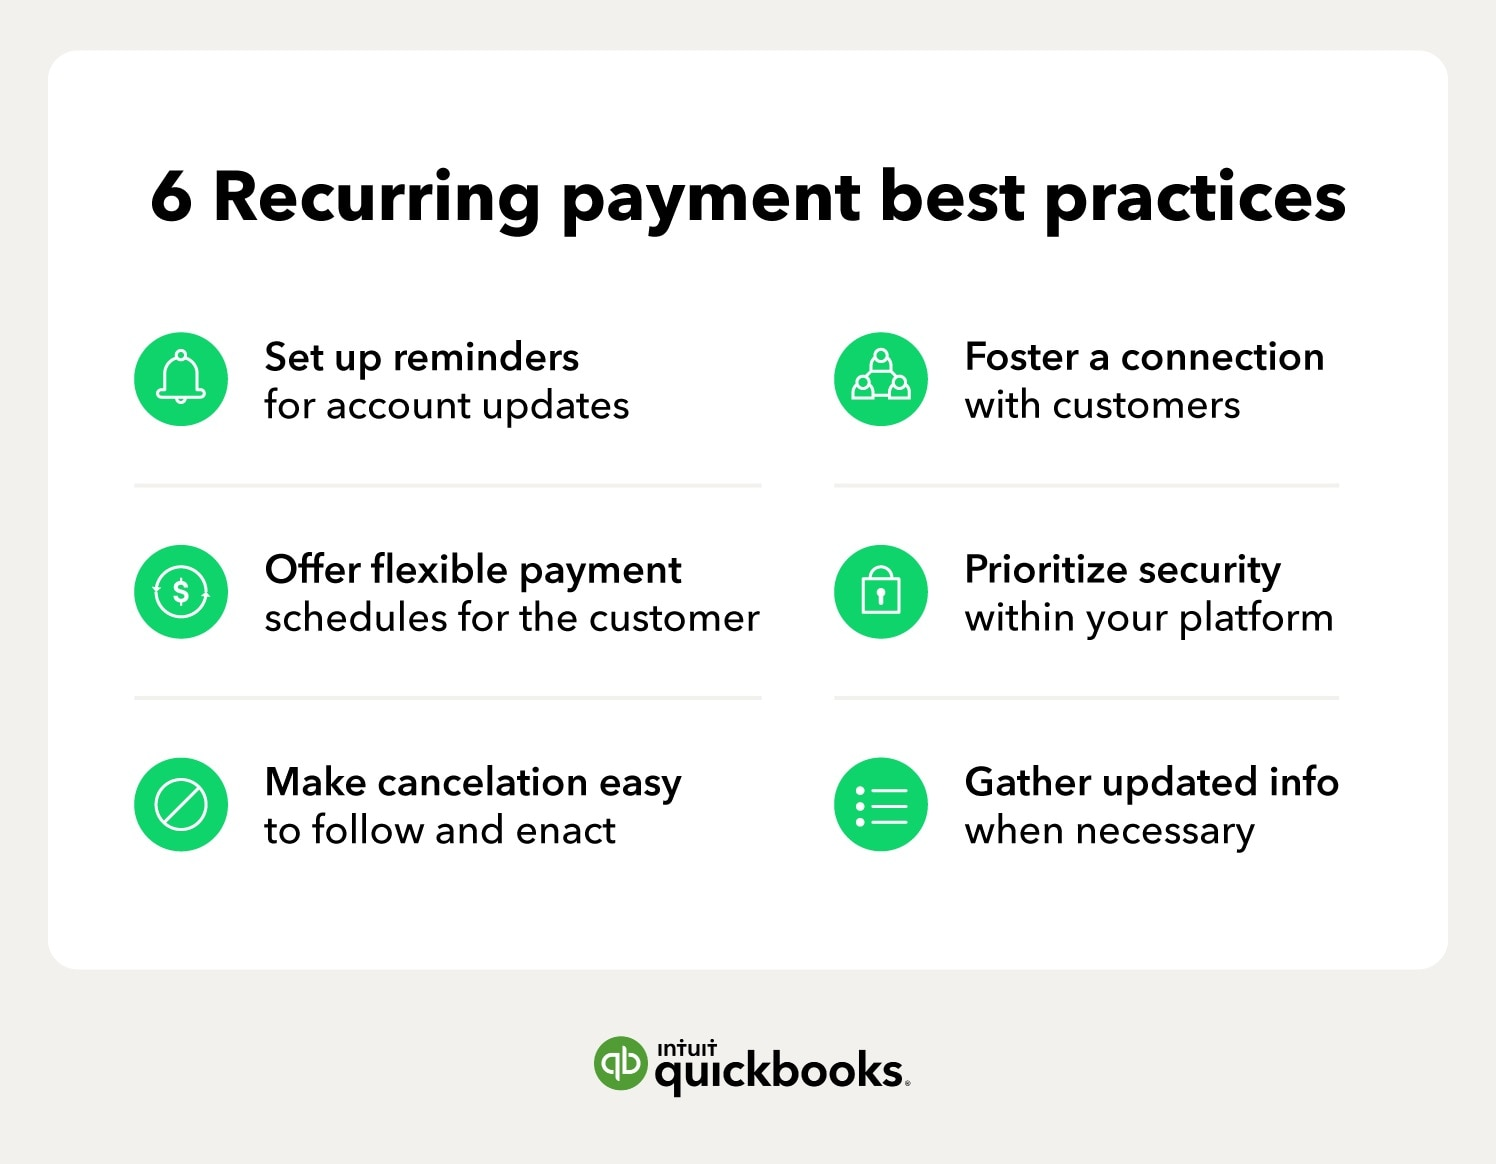 An illustration of a chart showing 6 recurring payment best practices